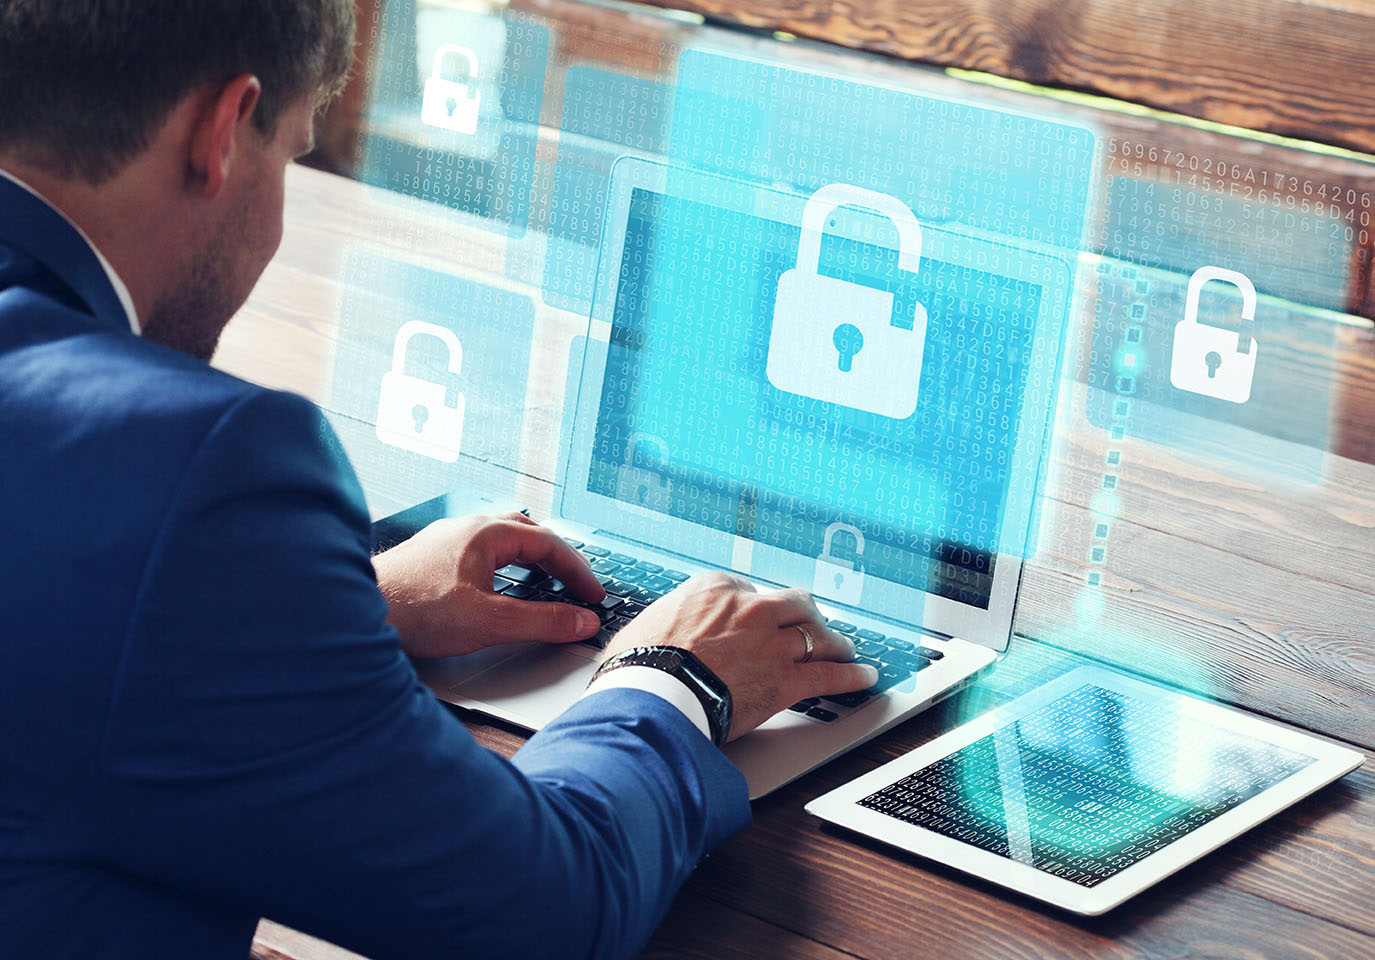 Security Threat Awareness And Prevention Tactics In The